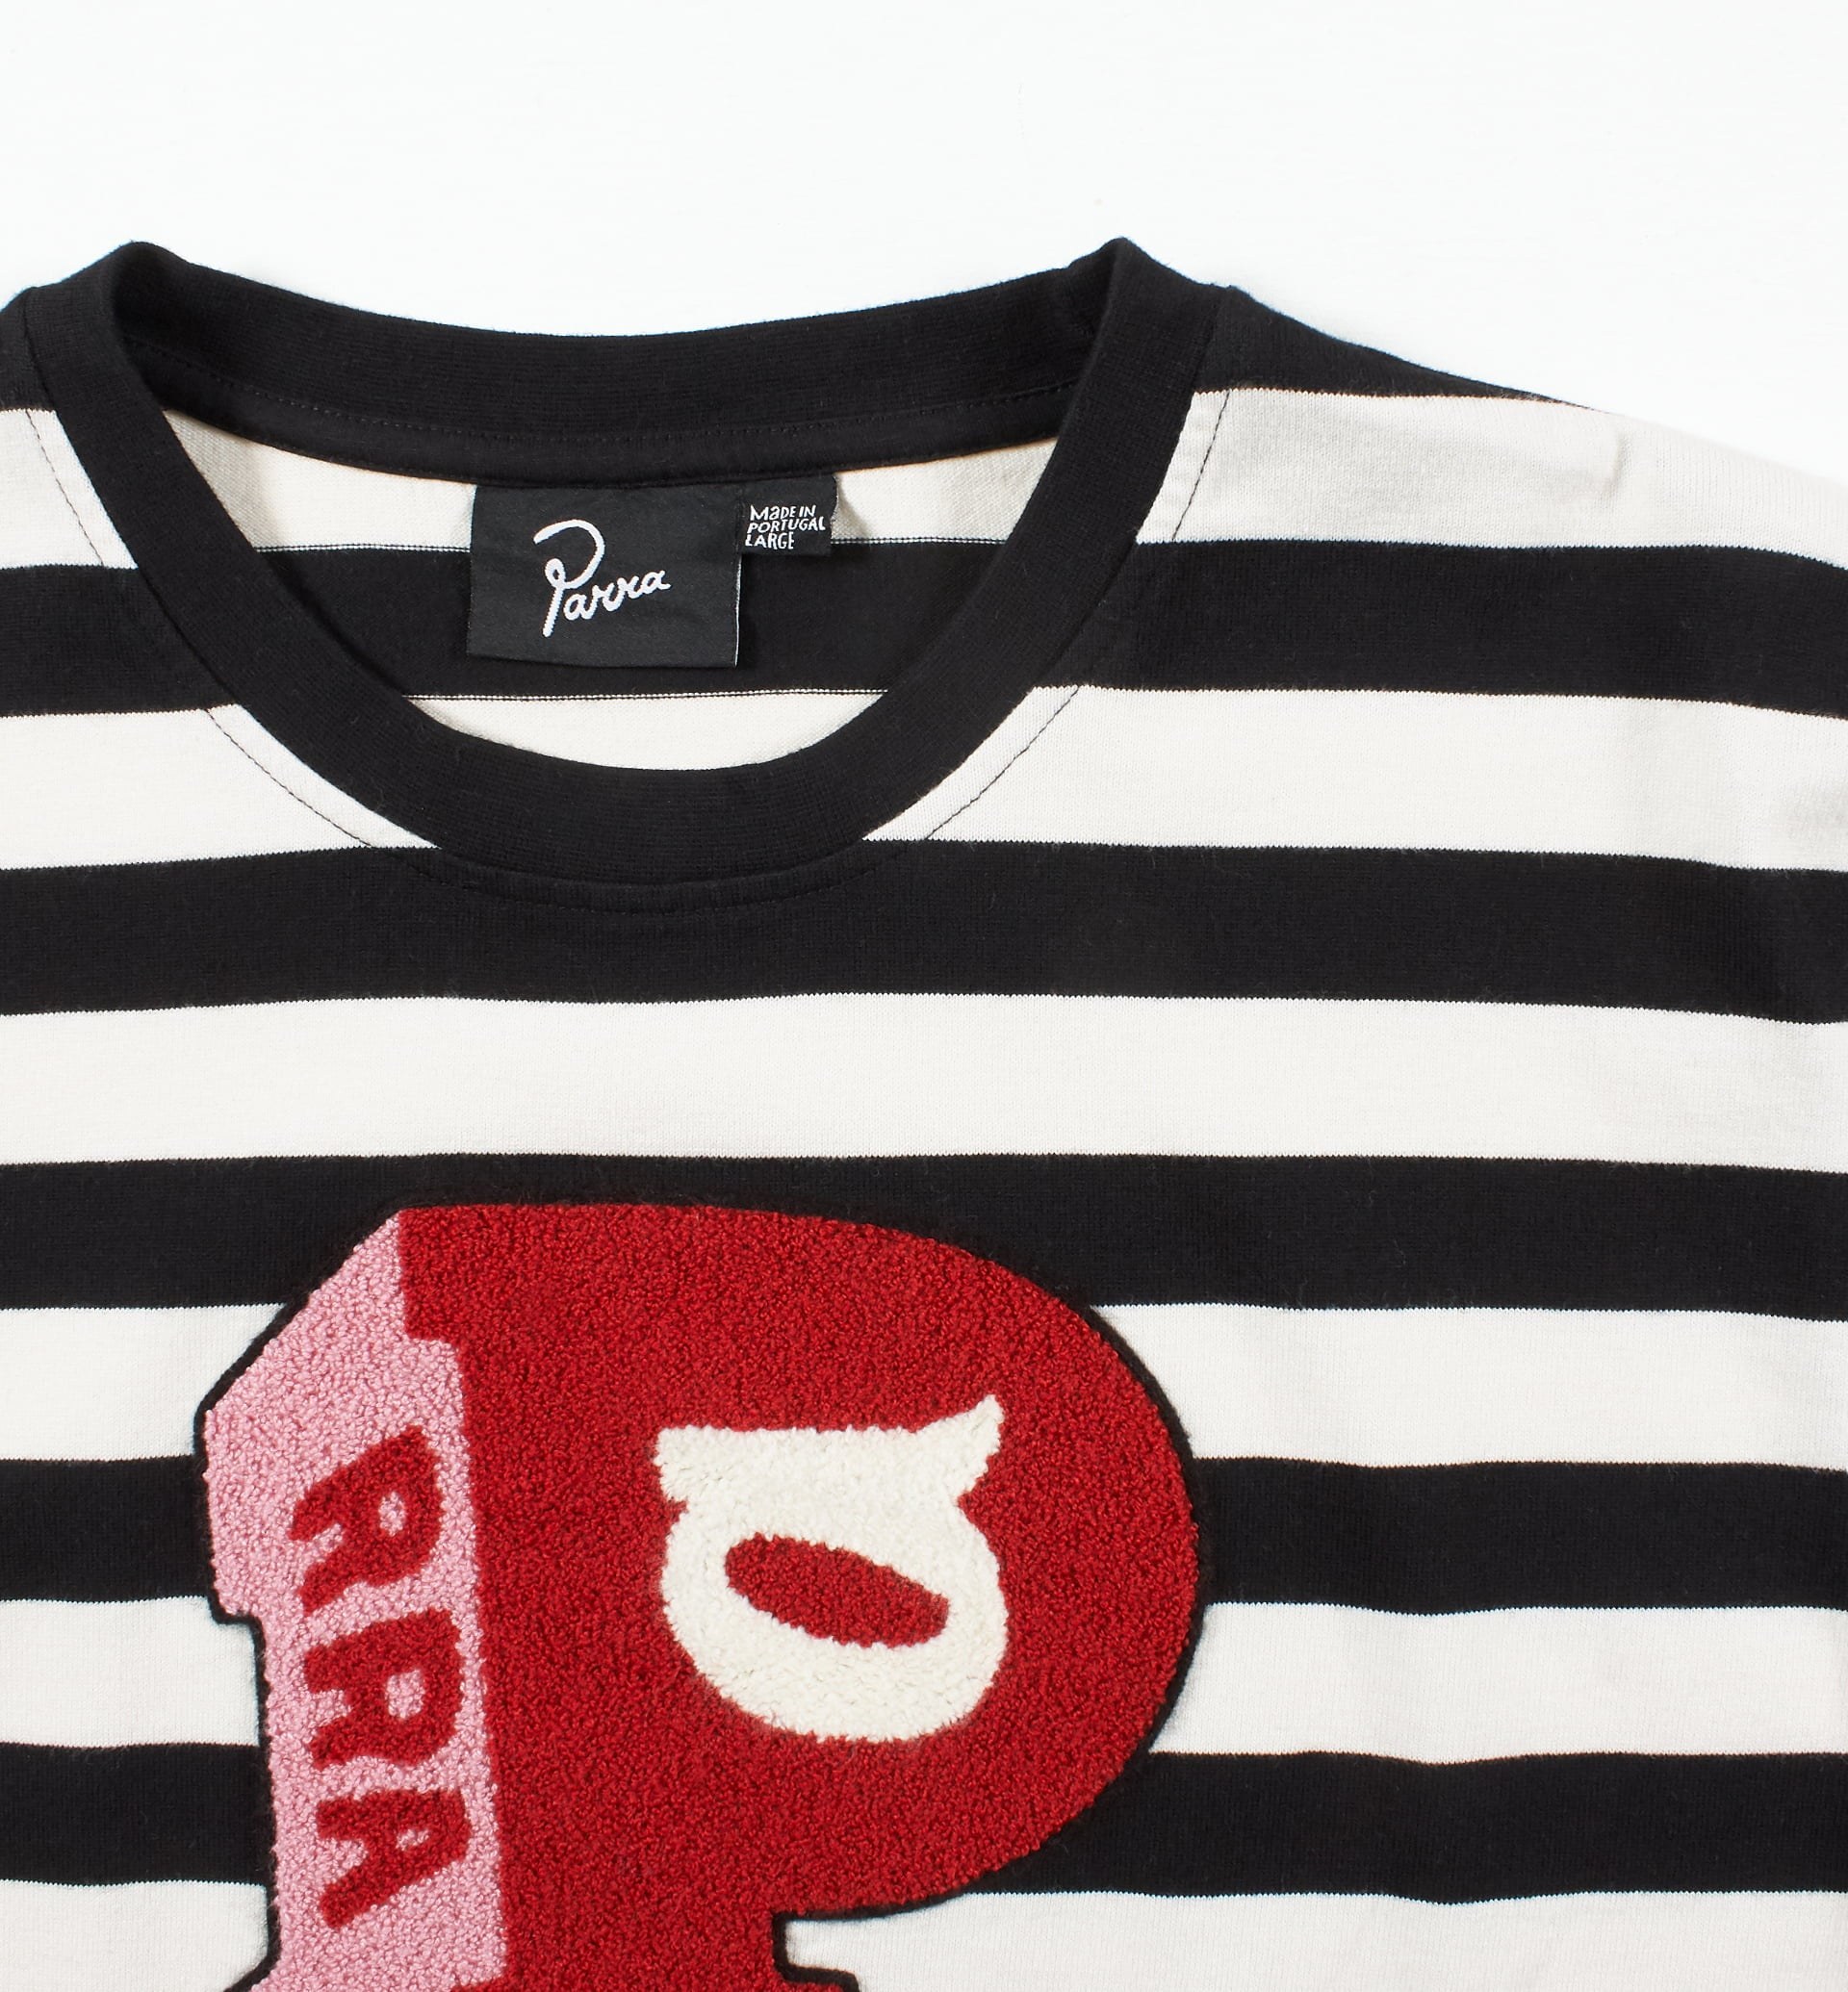 Parra - block P striped long sleeve t-shirt